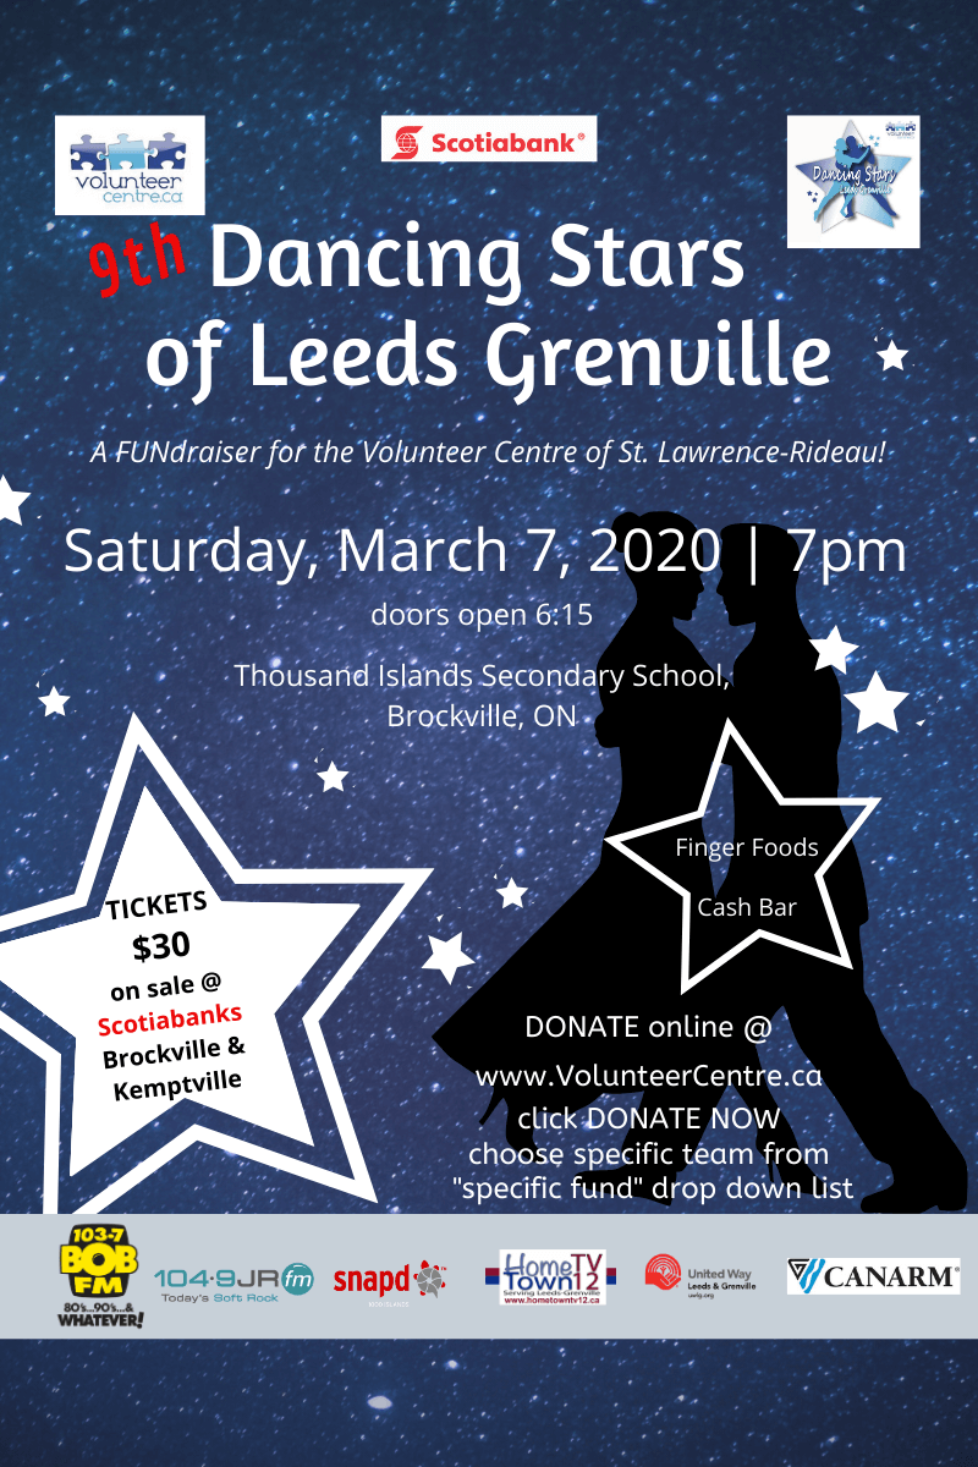 9th Annual Dancing Stars of Leeds Grenville